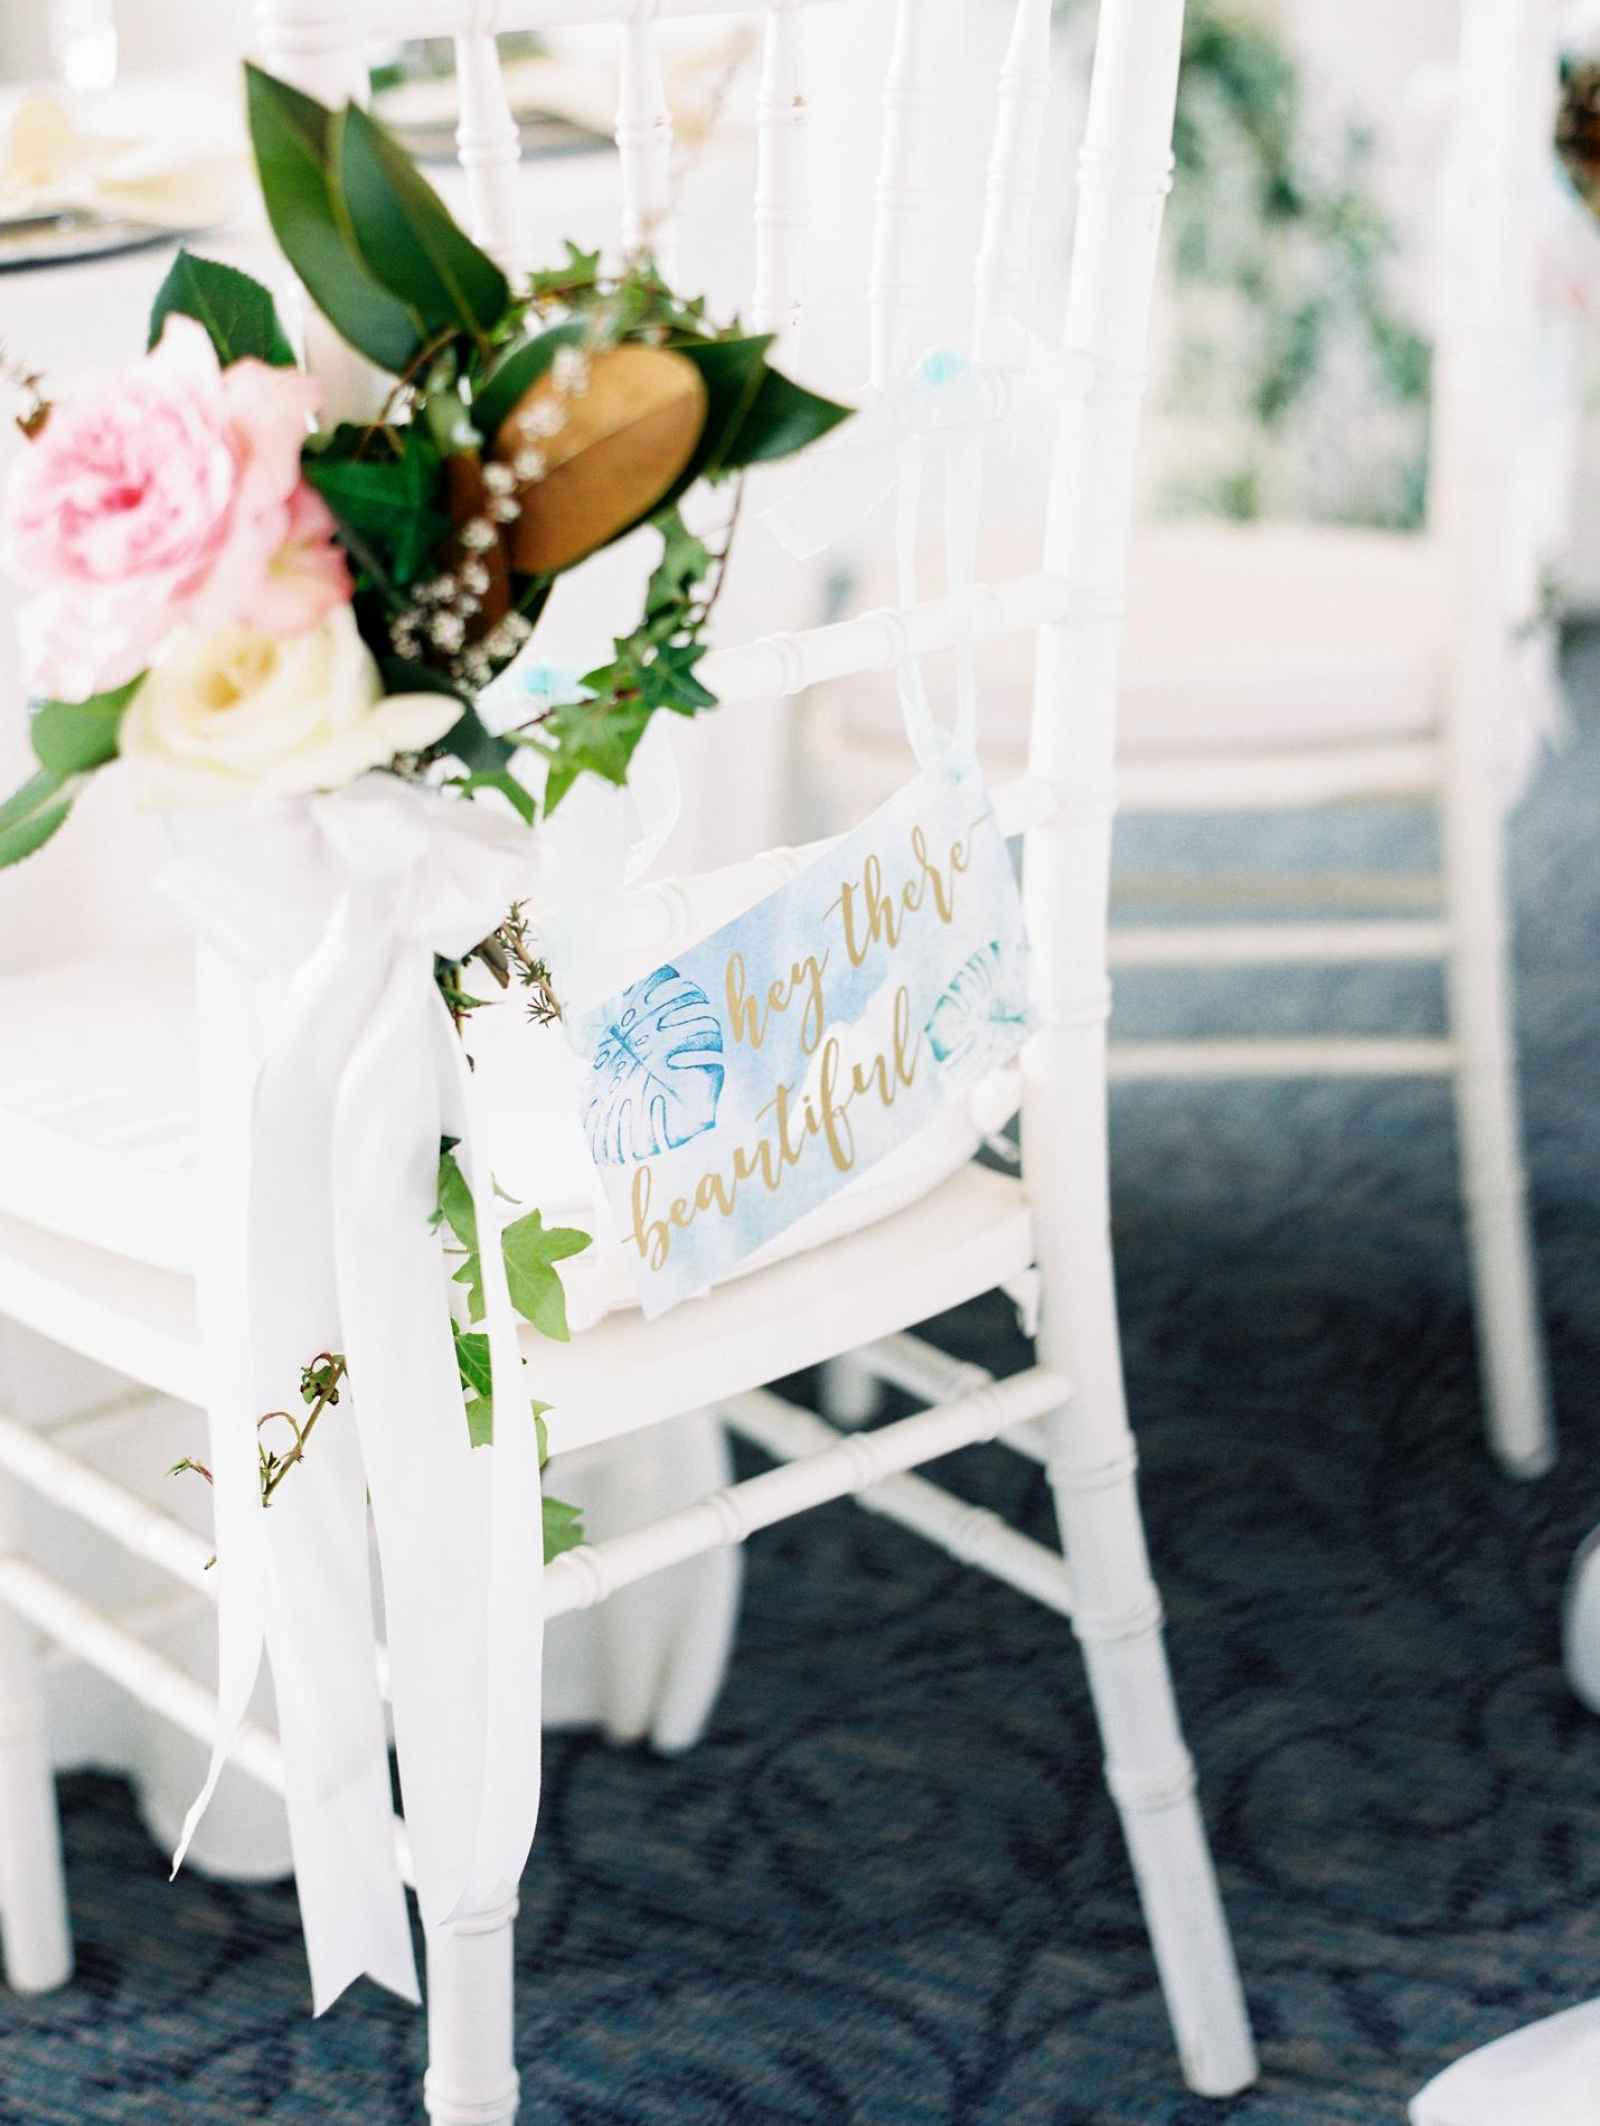 How To Set A Stunning Table With The Rental Company Weddingday